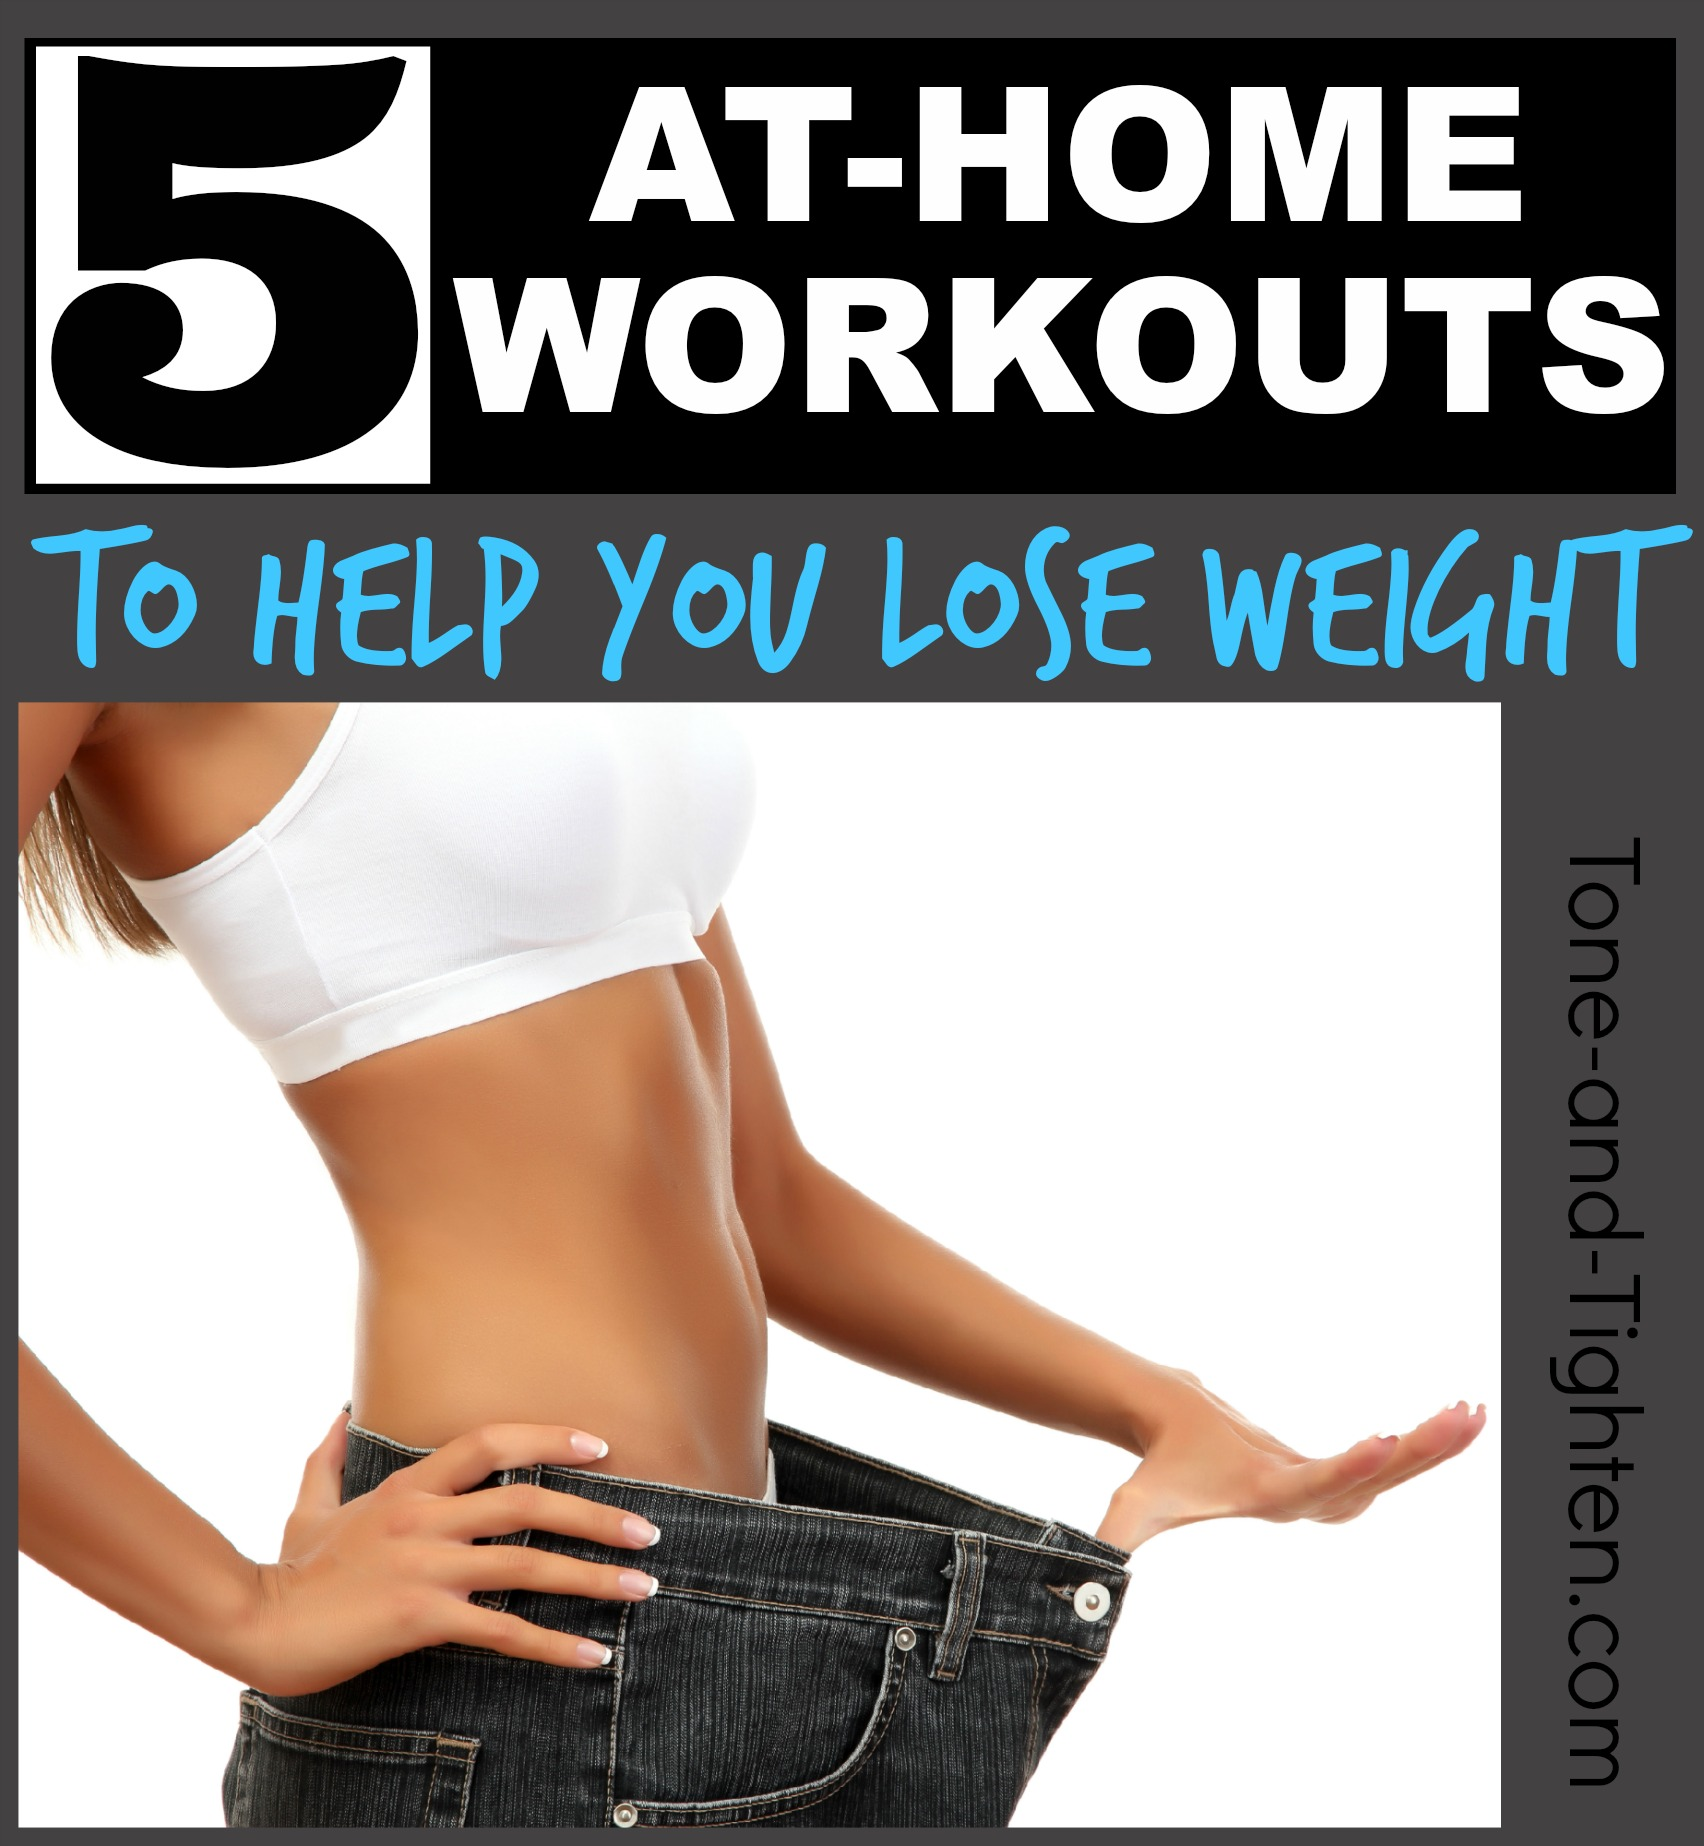 Workouts For Losing Weight At Home Workout